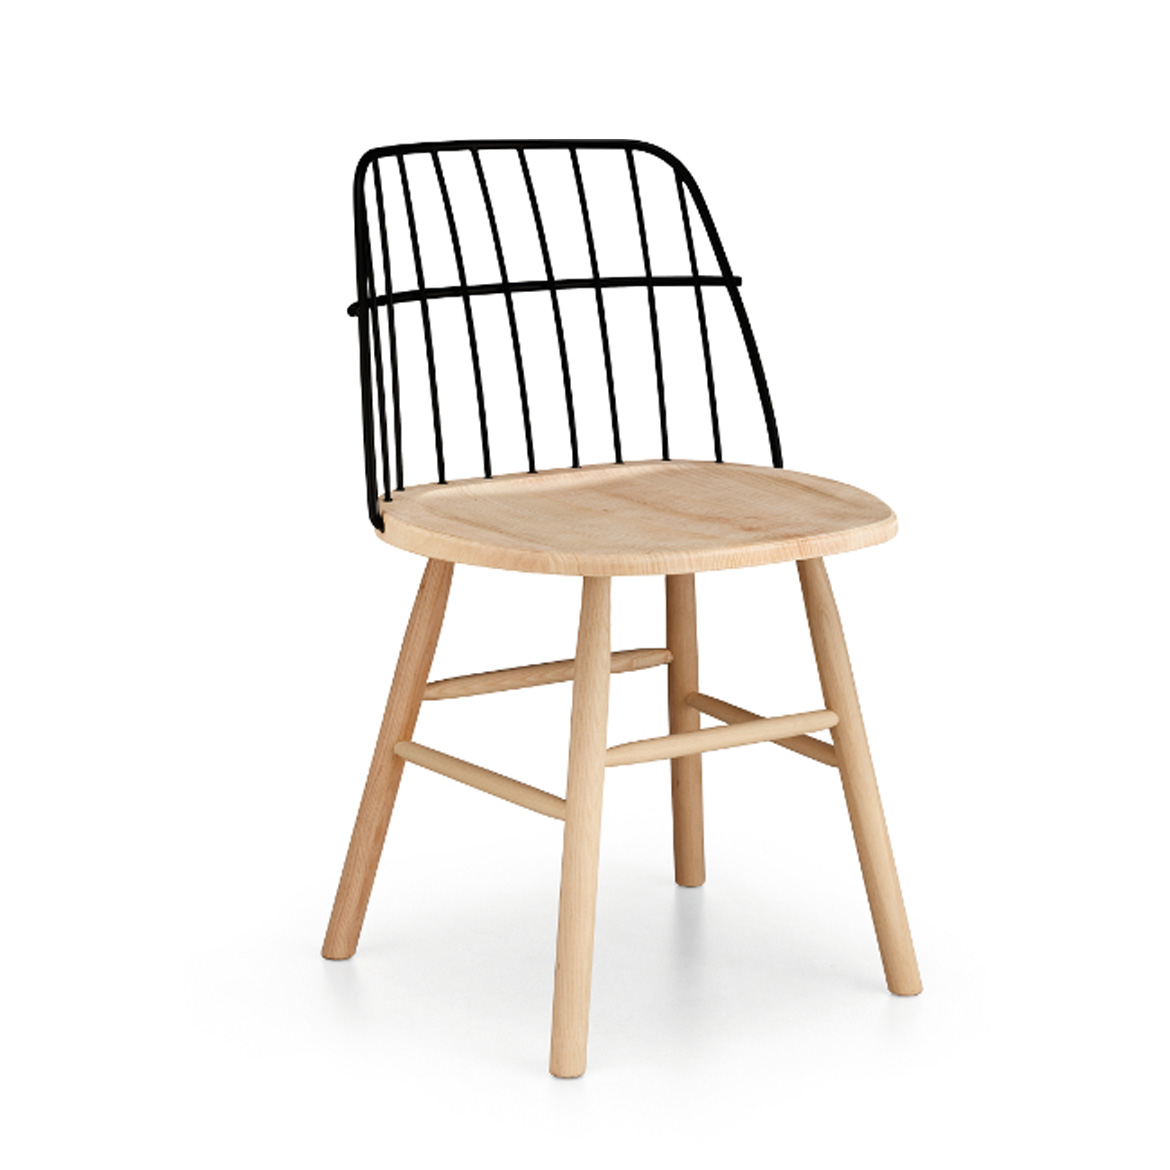 Chair with wooden frame backrest in lacquered steel. Avaliable in many colours and finishes.